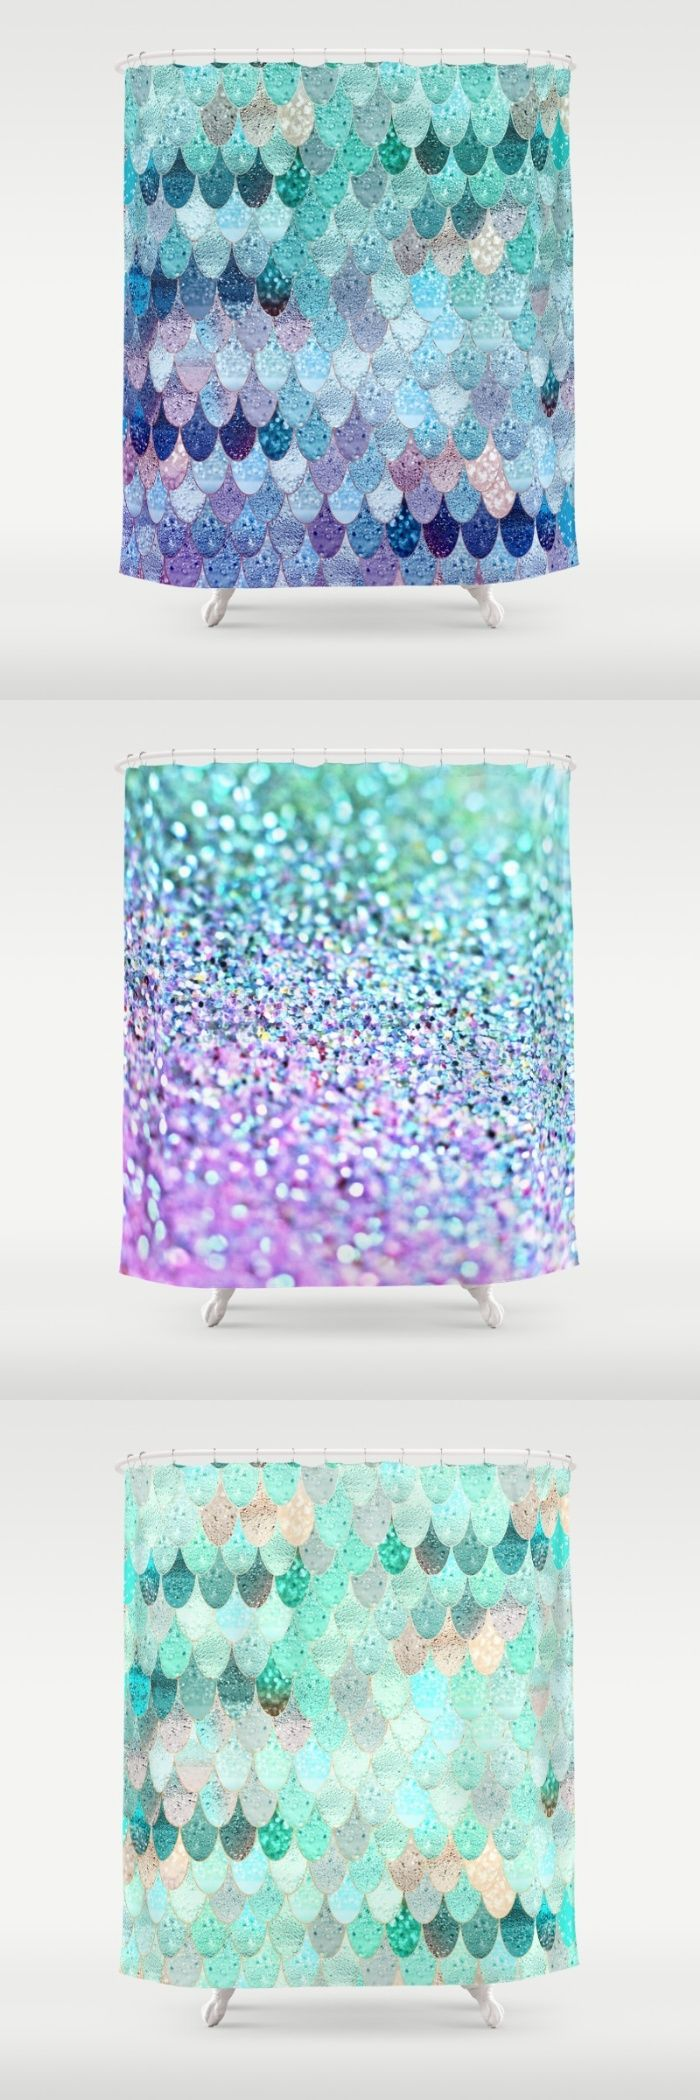 Purple Shower Curtains Ideas Onpurple